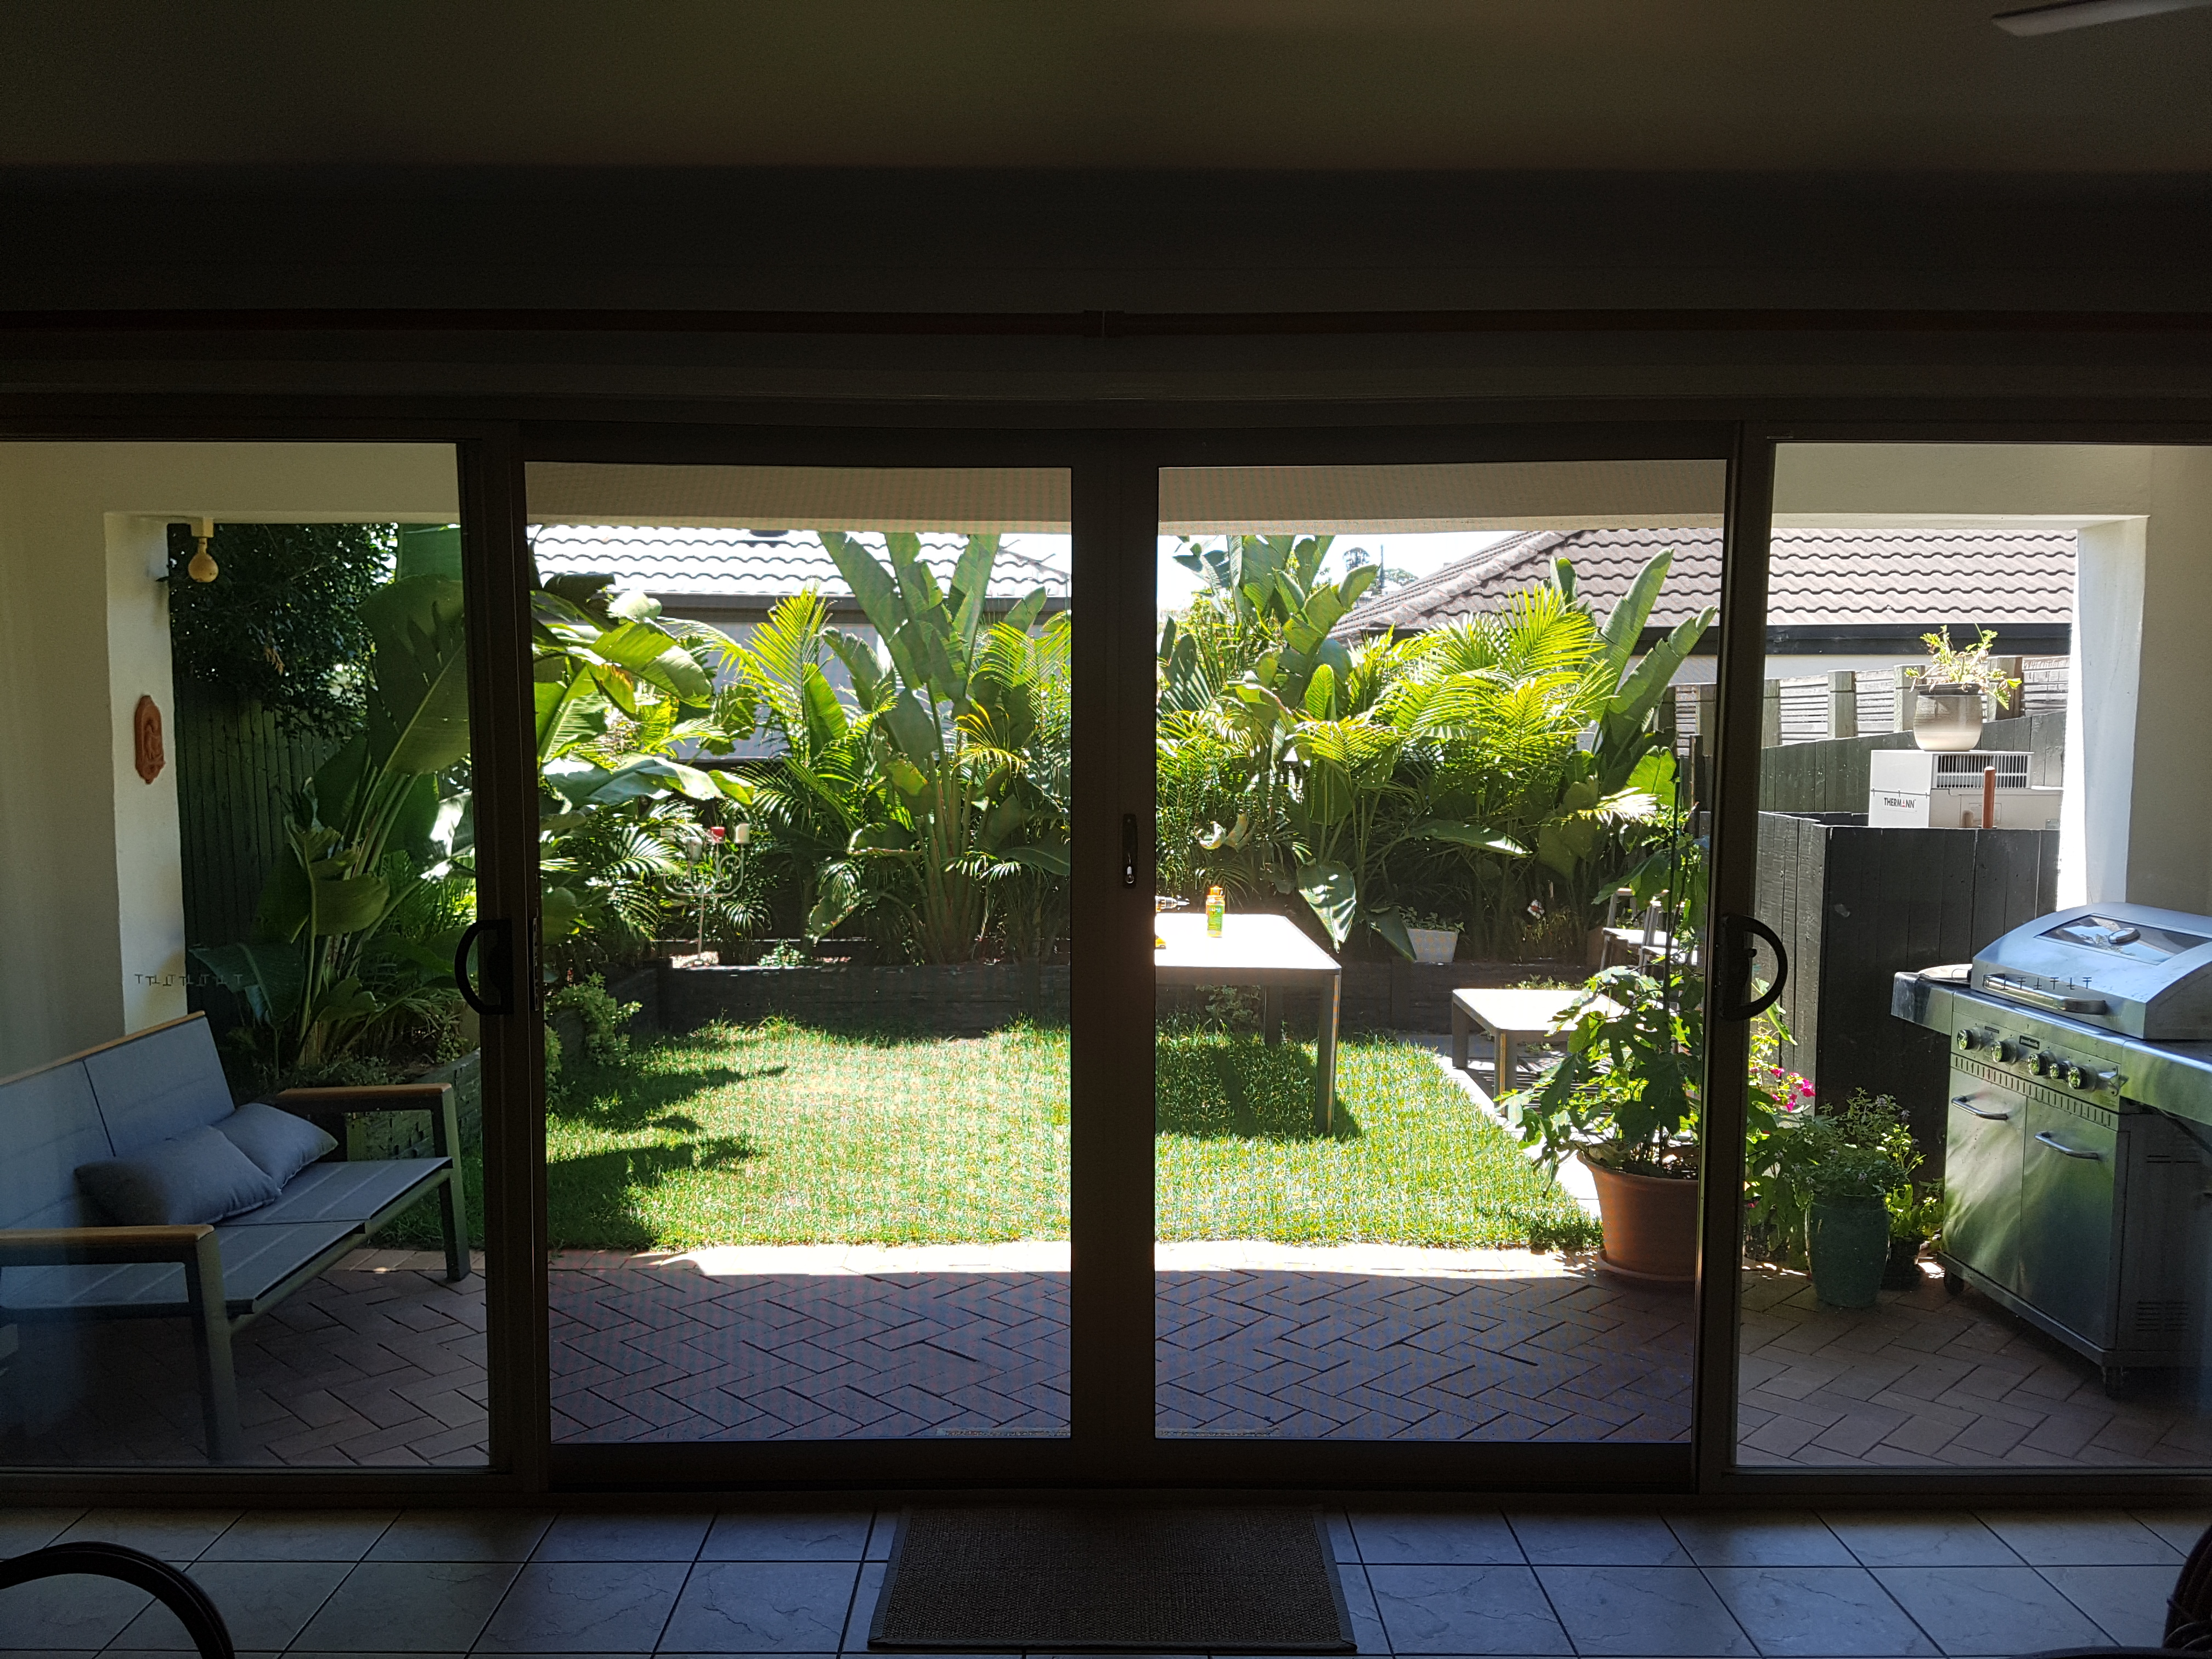 Stainless steel security doors allow great views